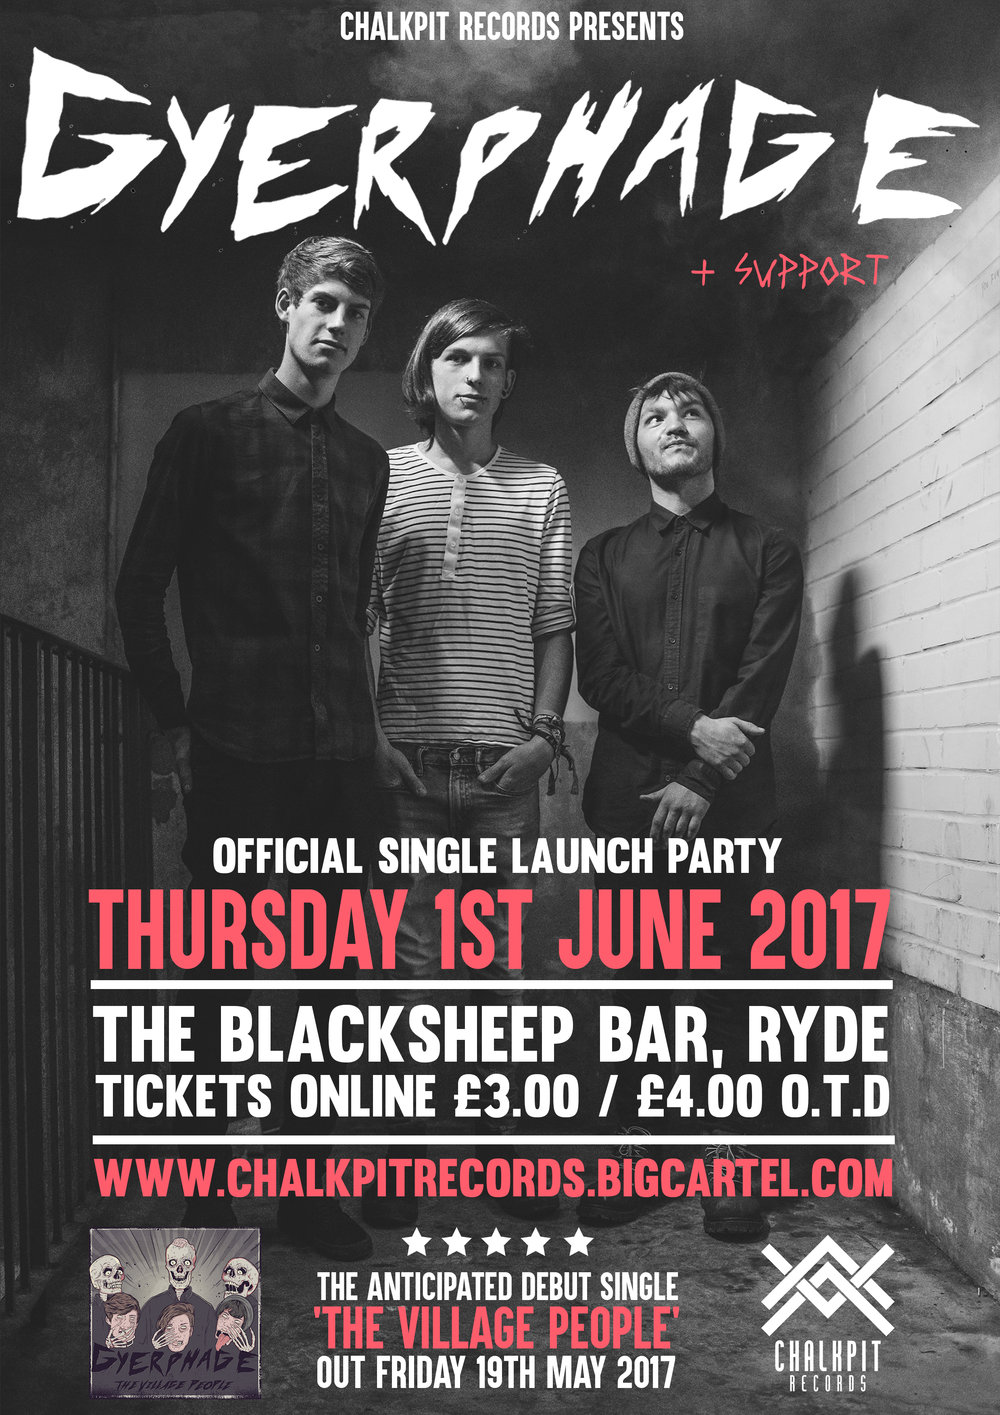 Gyerphage Single launch poster.jpg